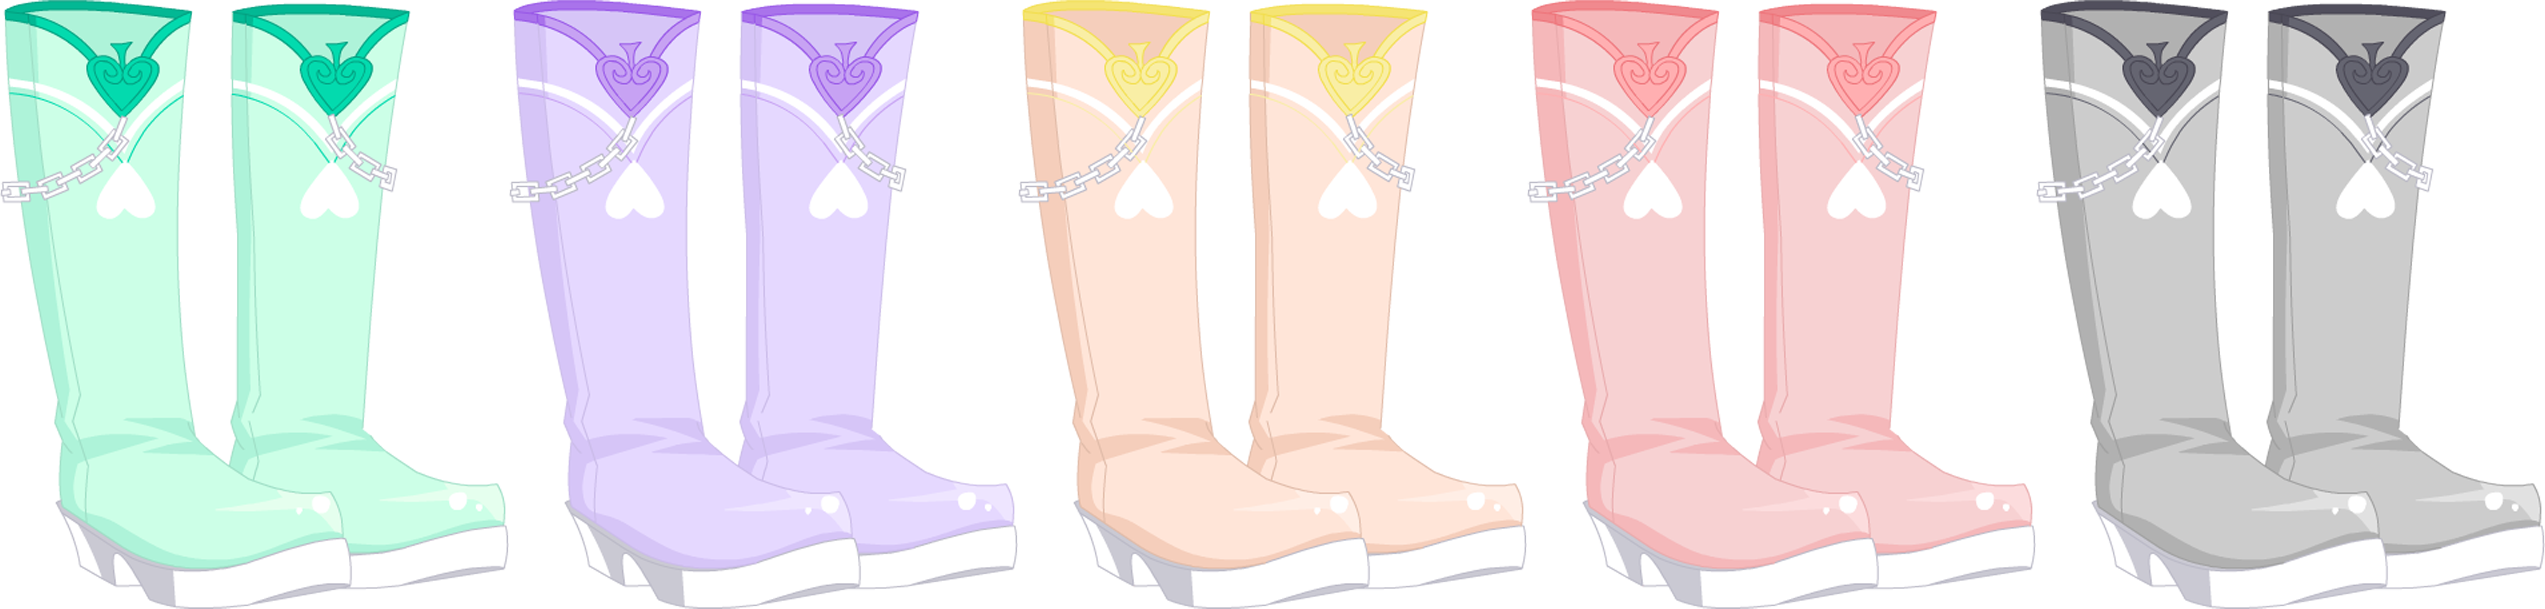 Feb. 2015 True King Of Hearts Boots